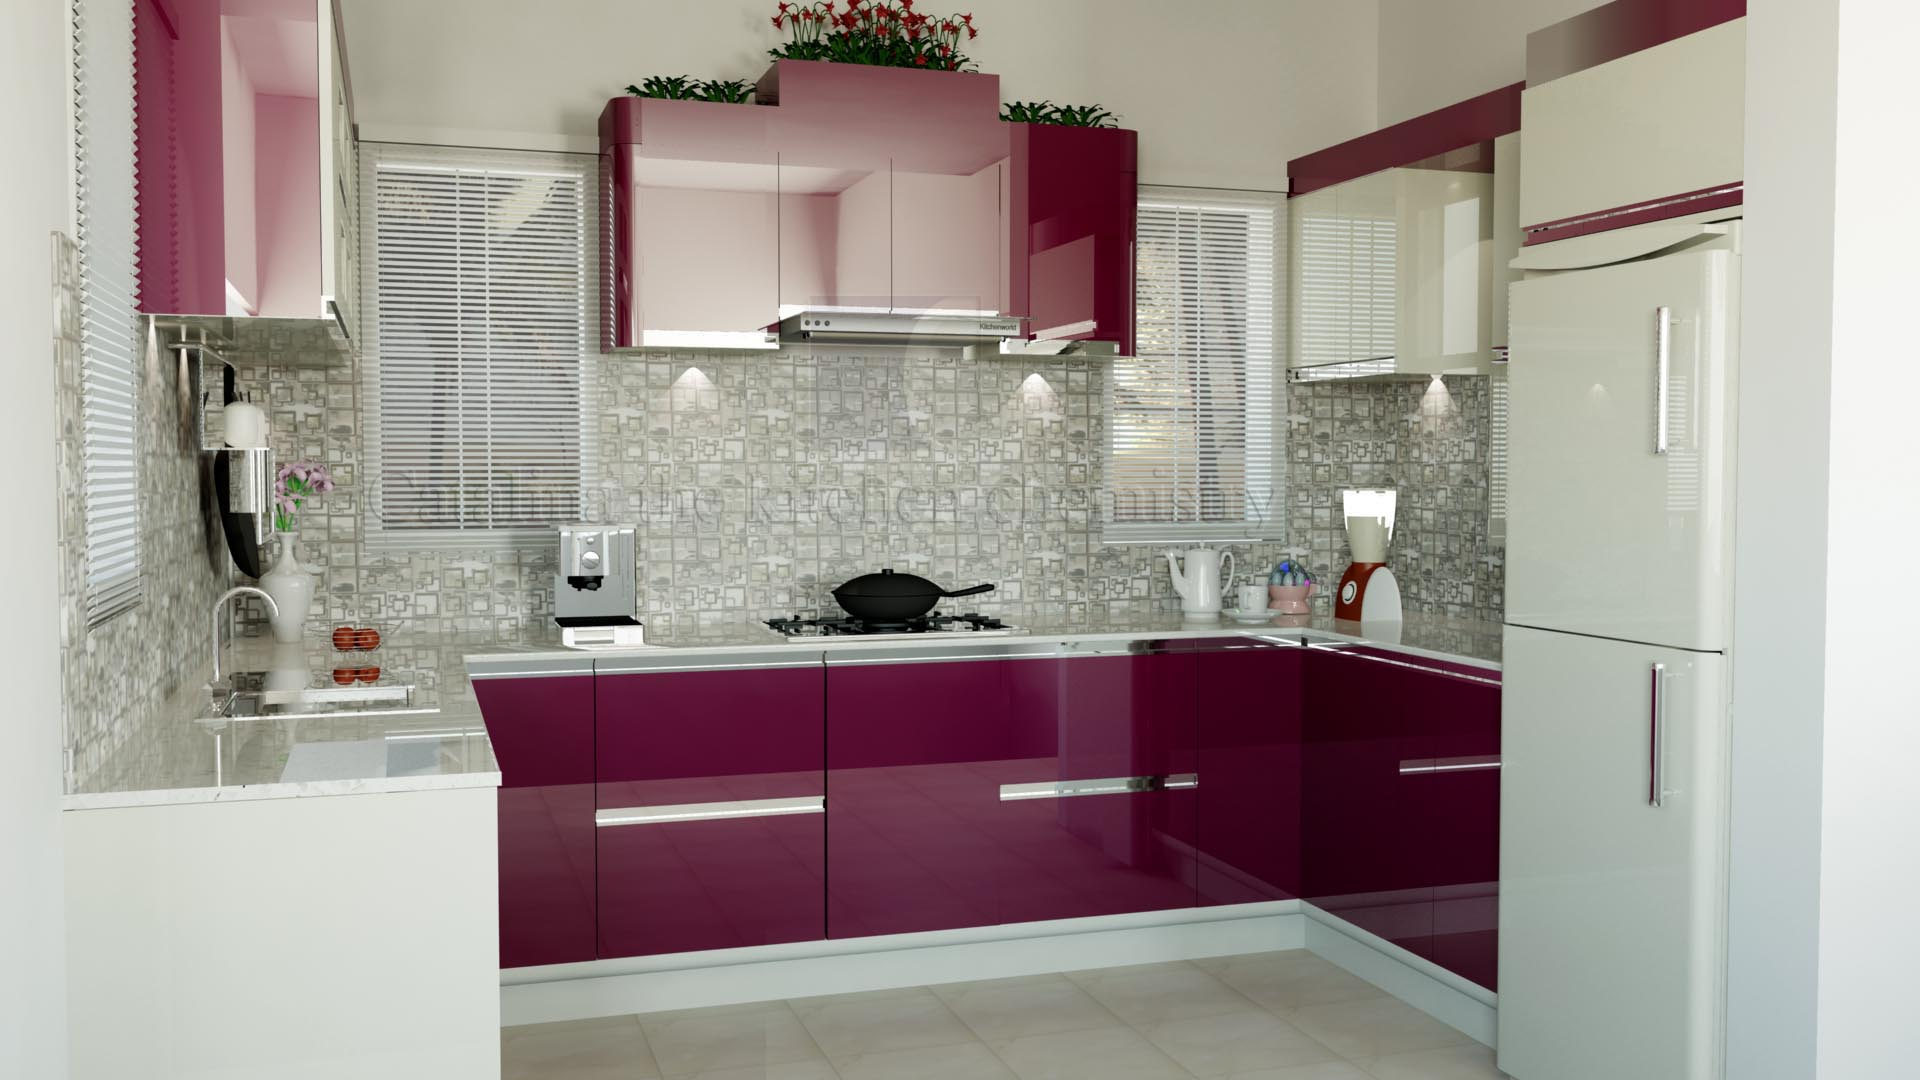 Parallel Kitchen Design Ideas